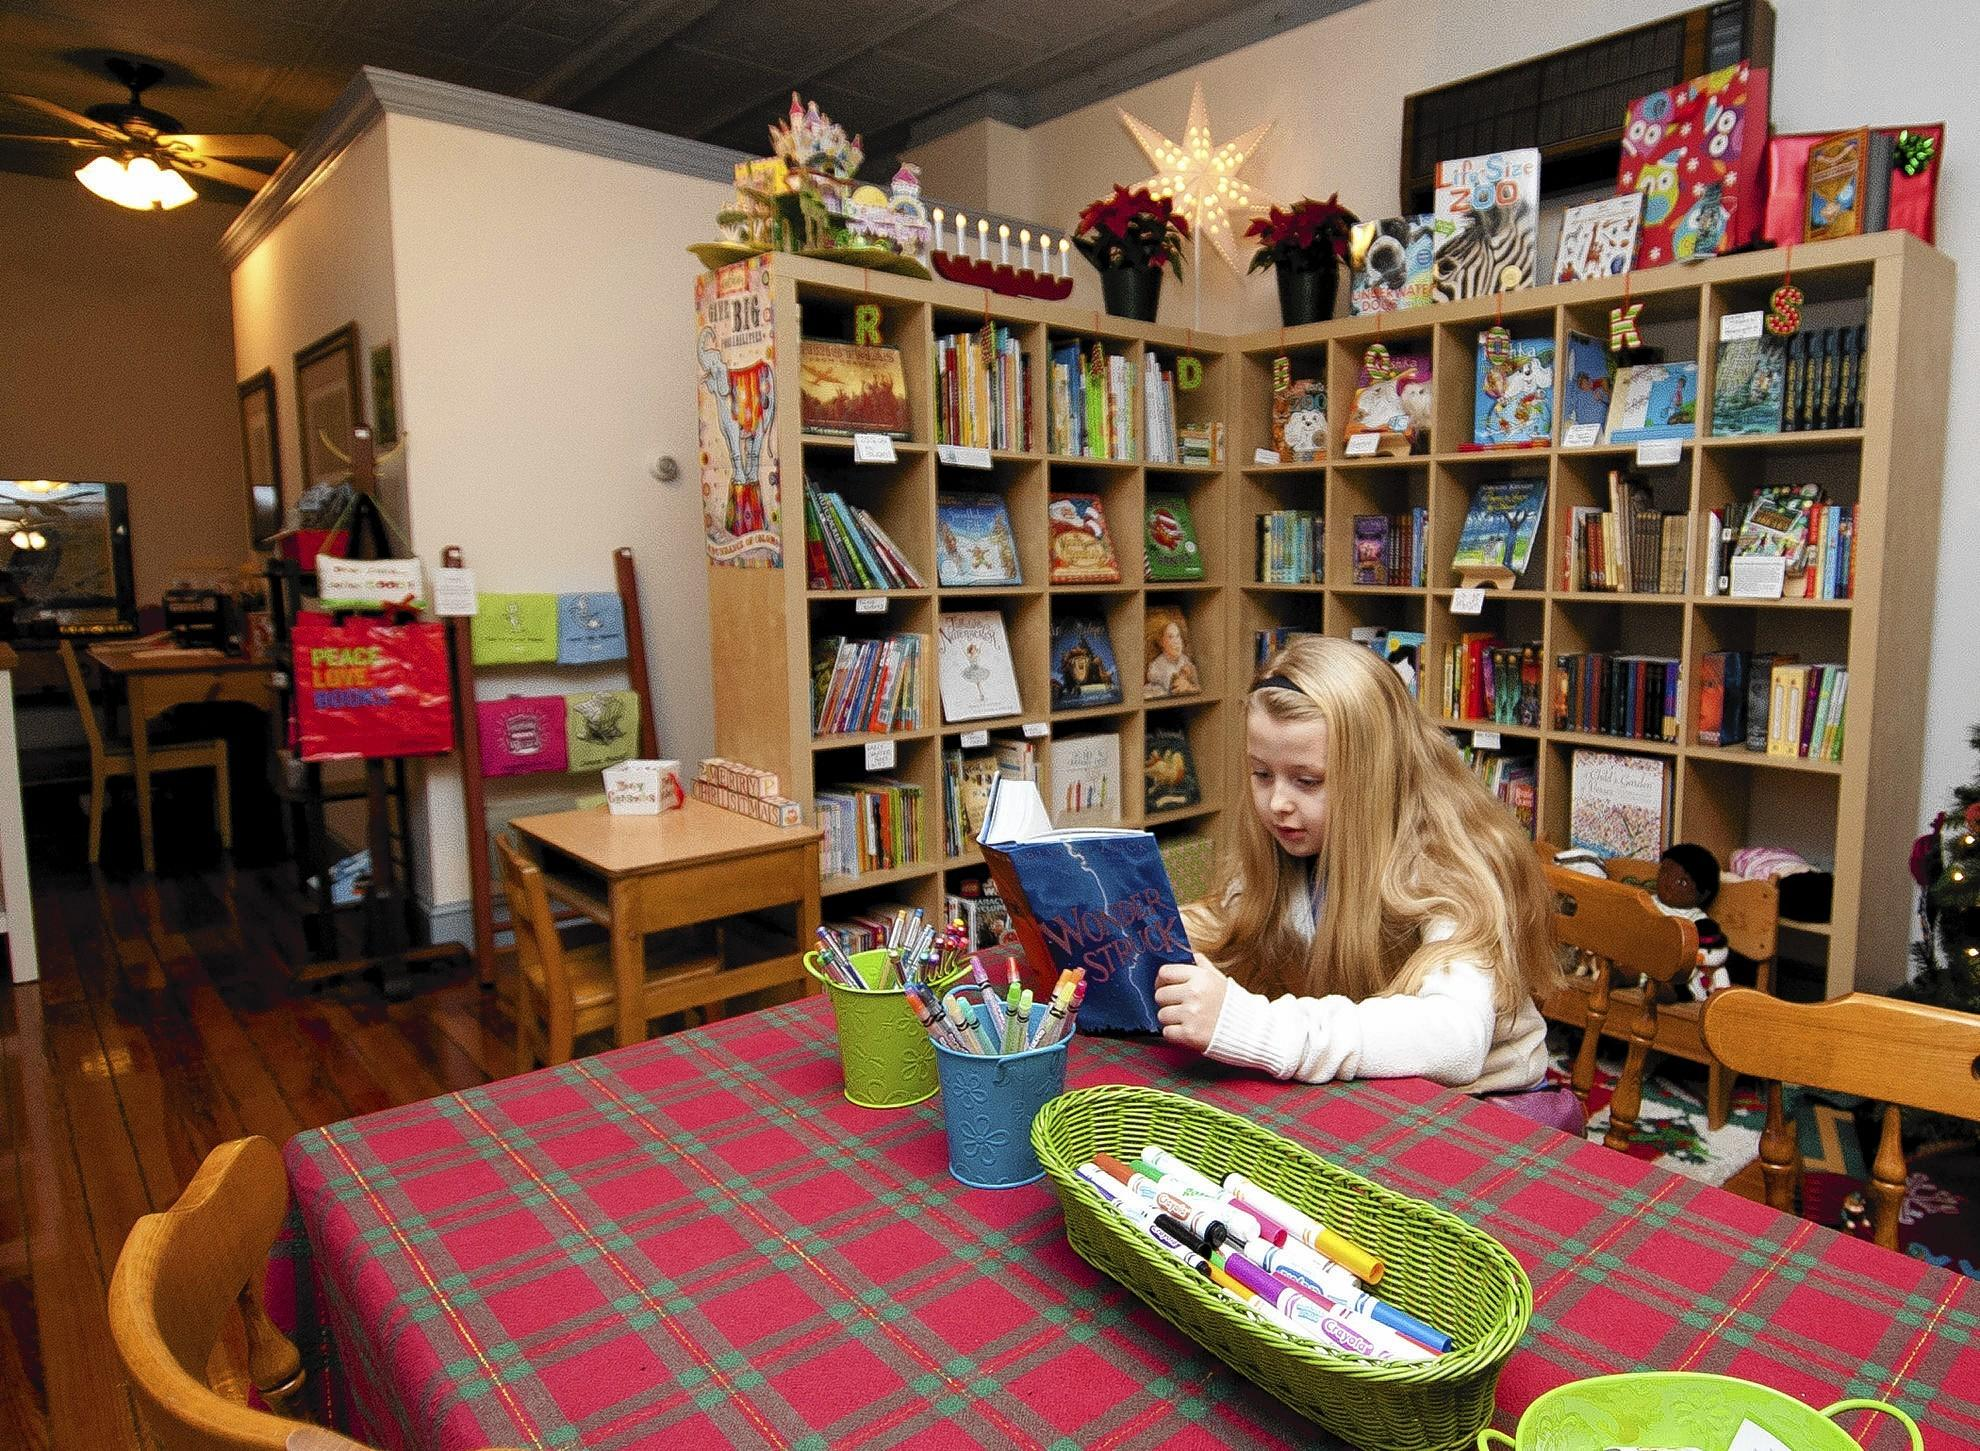 Madeleine Hess, 9, reads one of her favorite books at Let's Play Books at 379 Main St. in Emmaus.